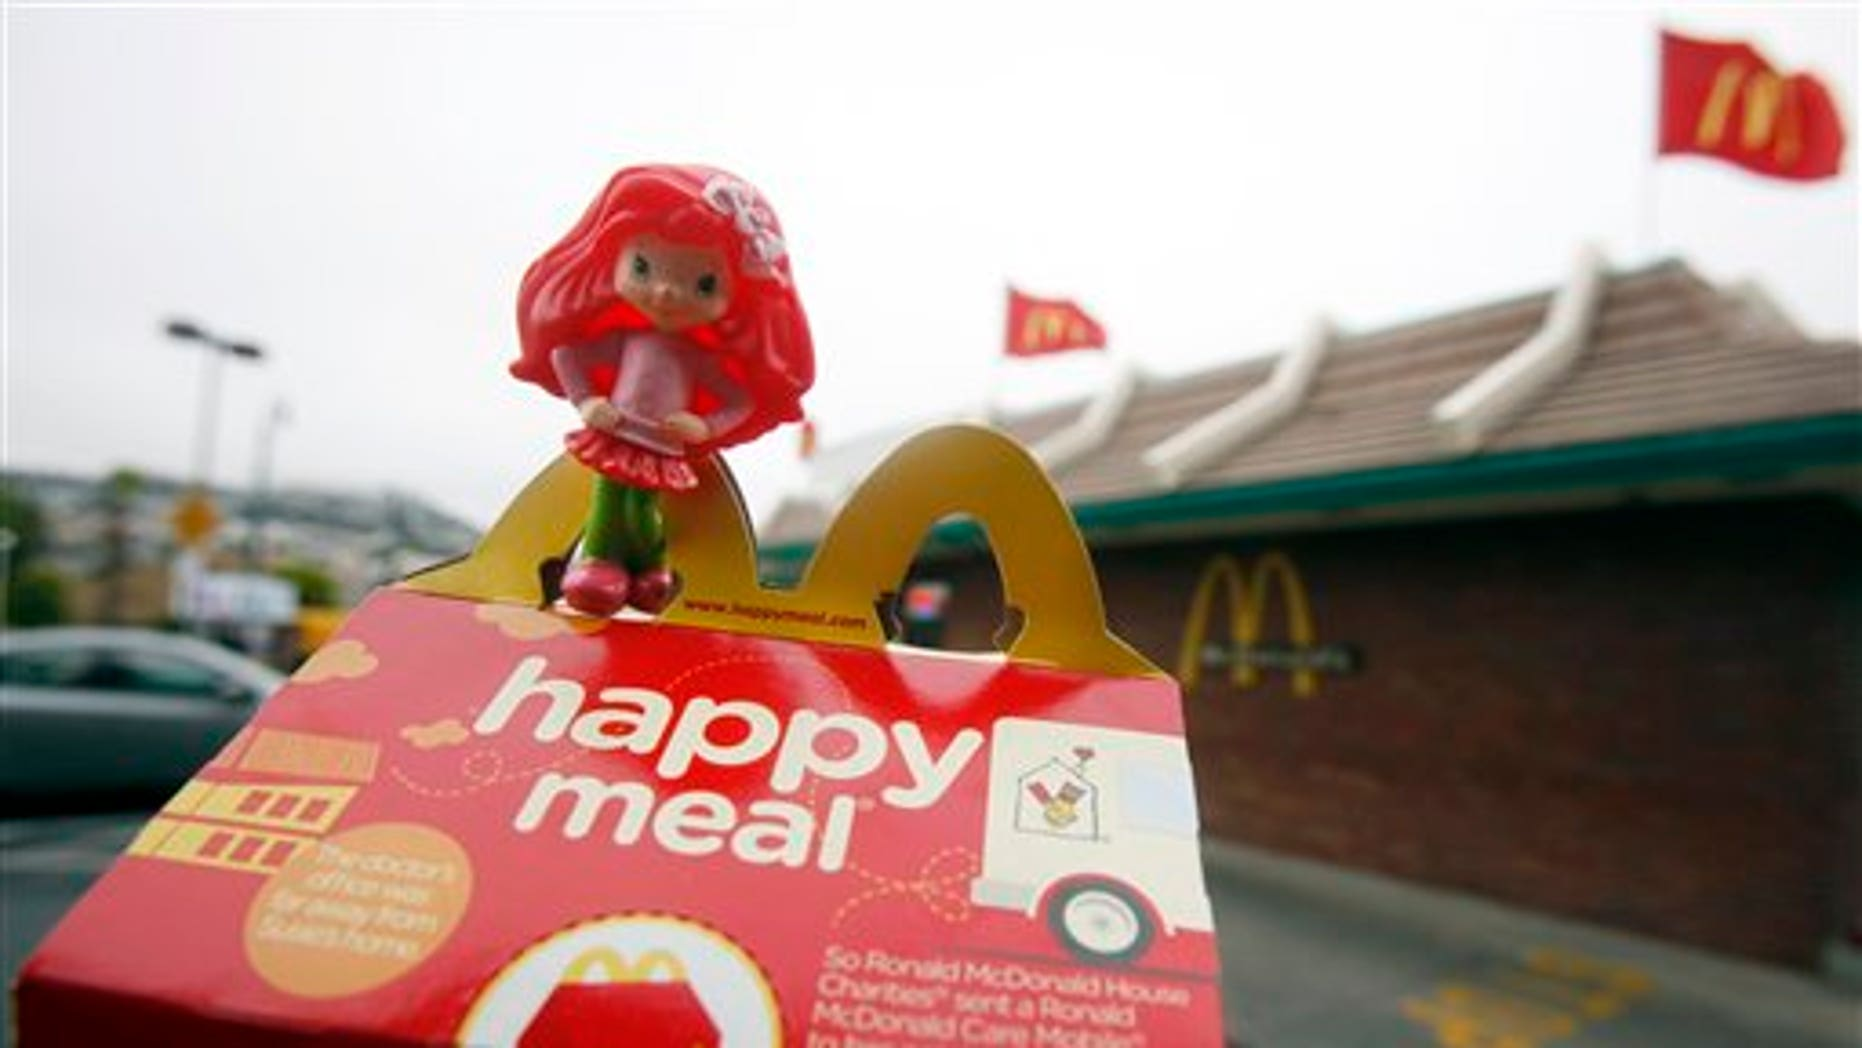 FILE - In this Oct. 1, 2010 file photo, a Happy Meal box and toy are shown outside of a McDonald's restaurant in San Francisco. City lawmakers on Tuesday, Nov. 2, 2010, approved legislation that they hope will force fast-food chains such as McDonald's to make their children's meals healthier or stop selling them with toys. (AP Photo/Jeff Chiu, File)